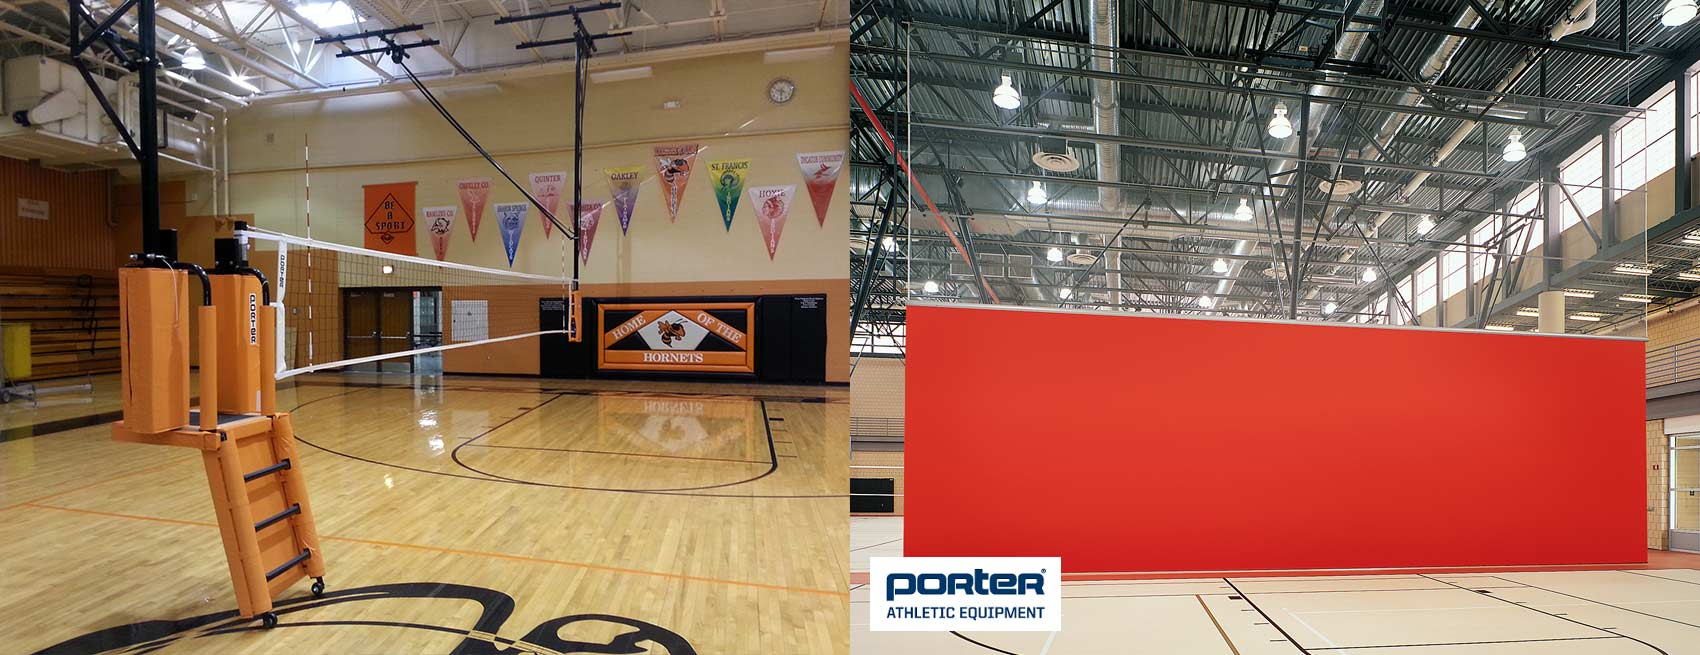 porter-athletic-gymnasium-divider